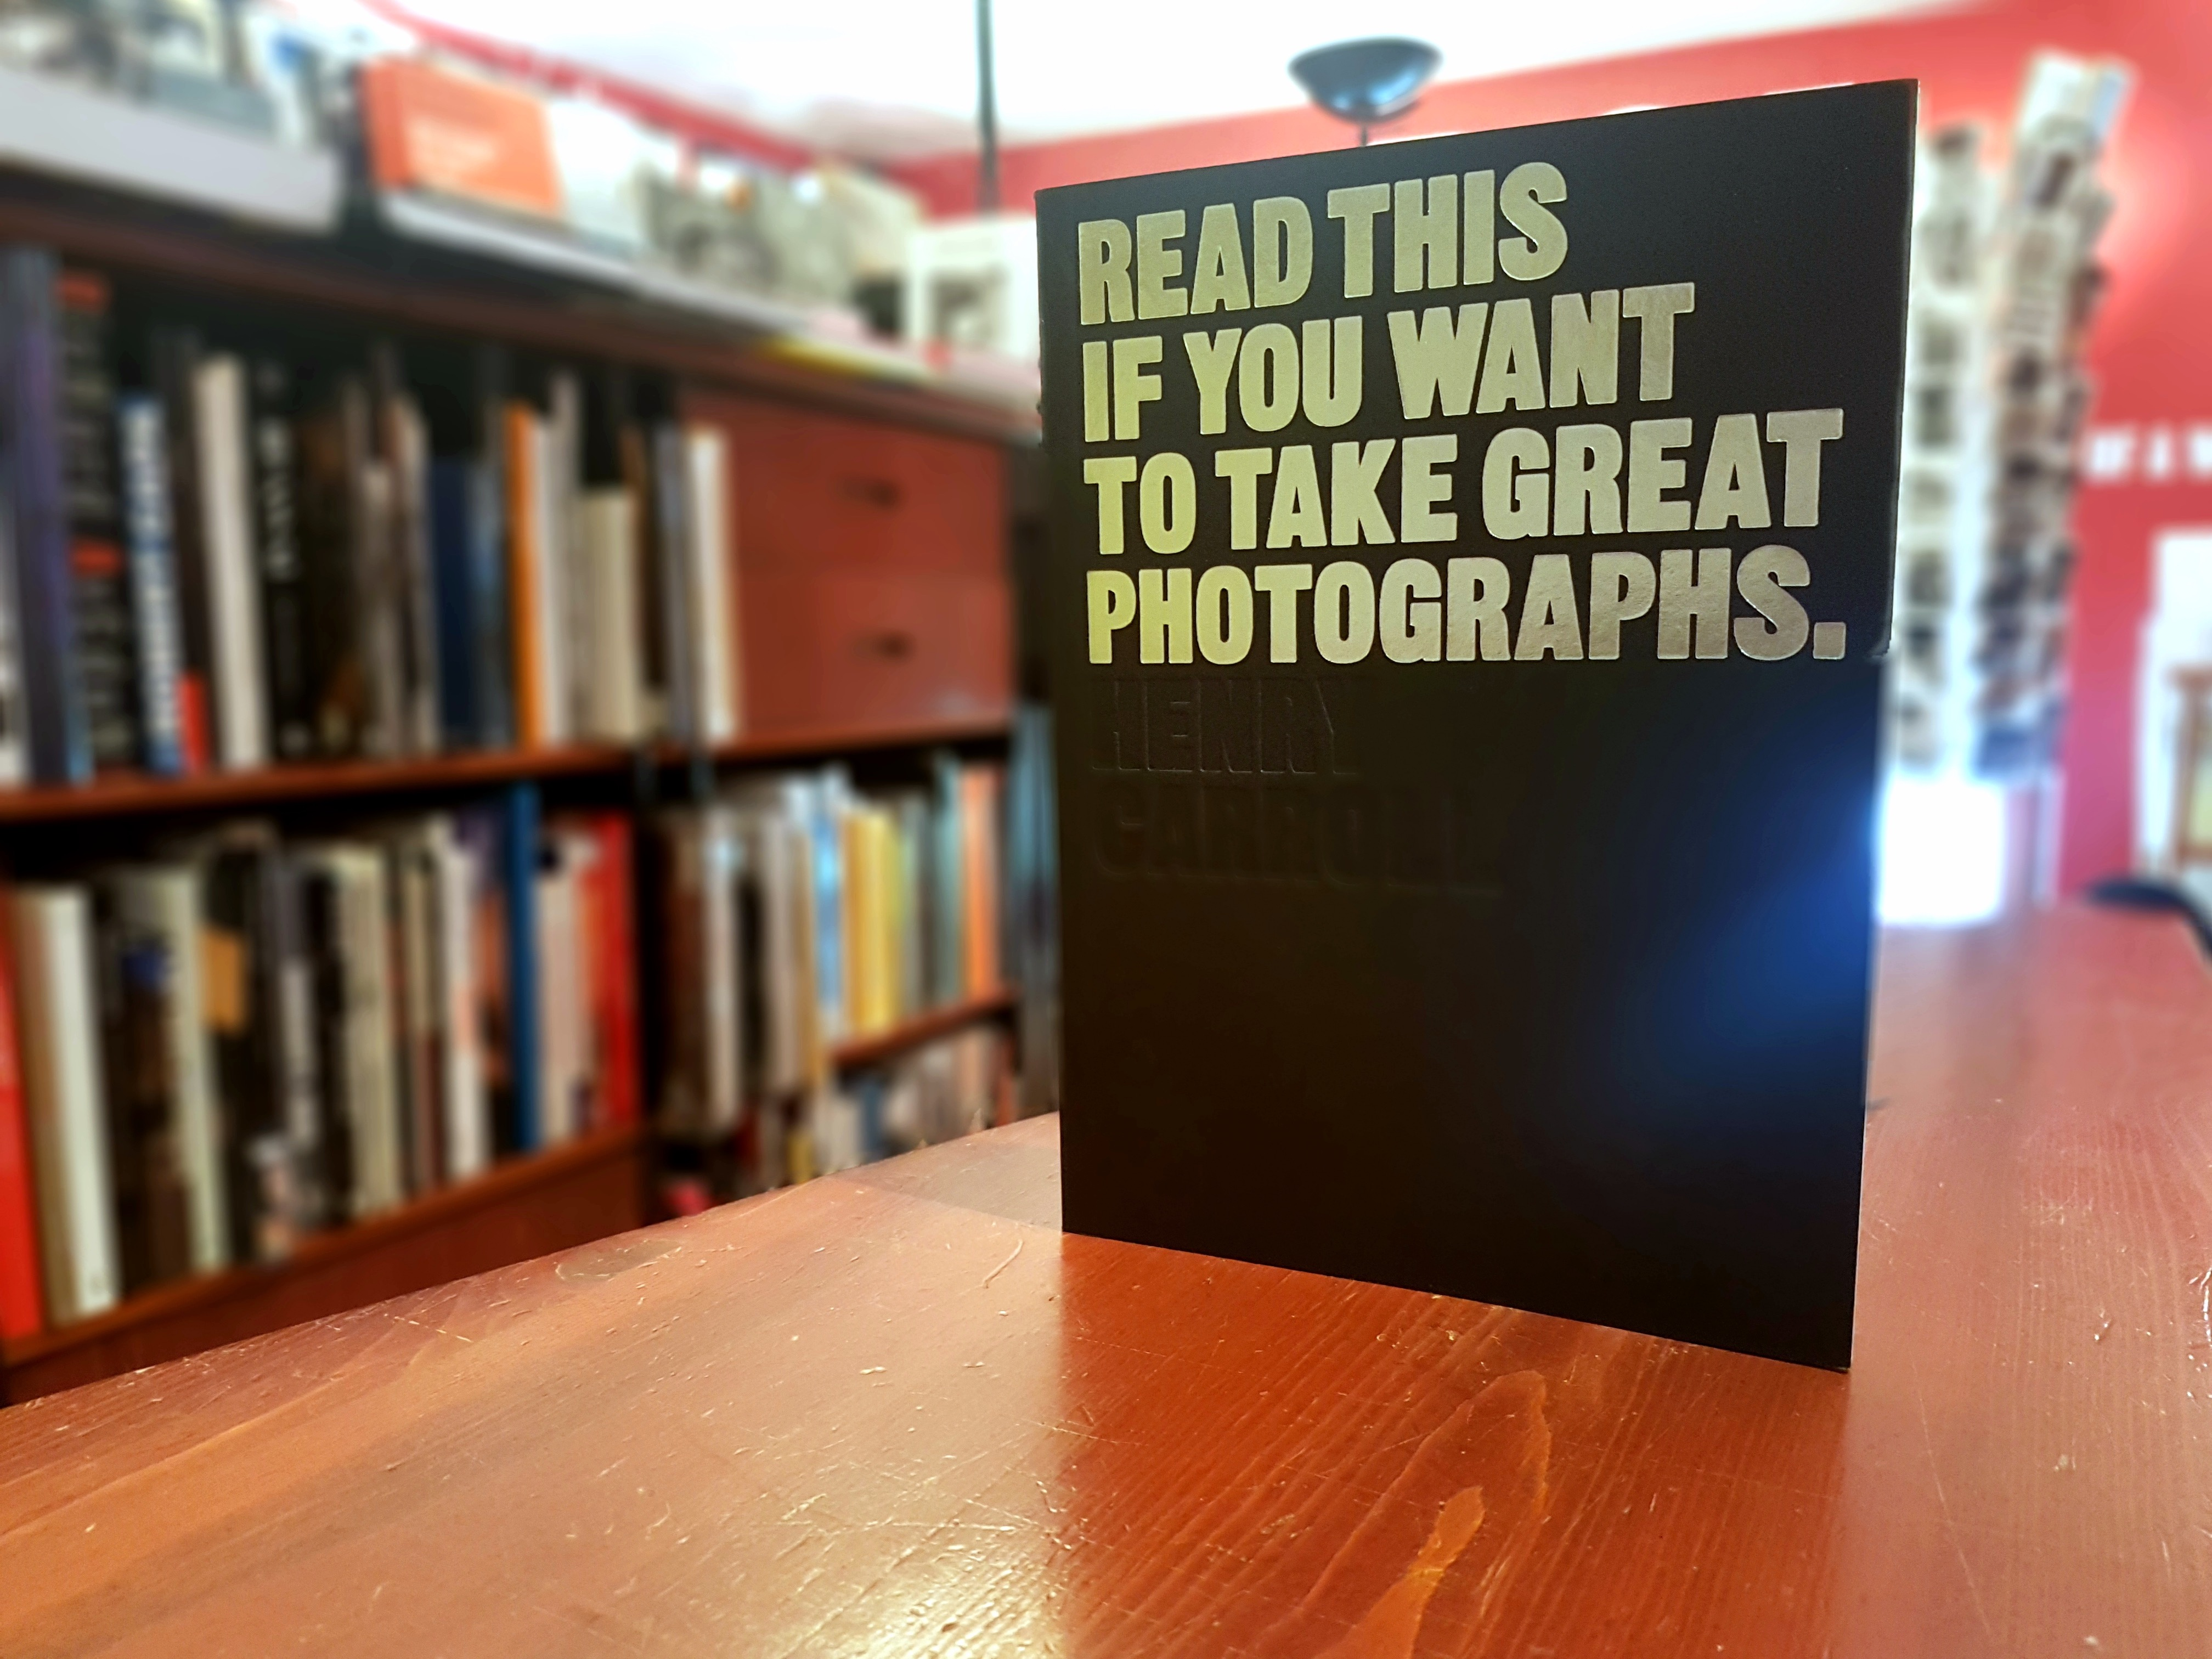 Read This. If You Want to Take Great Photographs